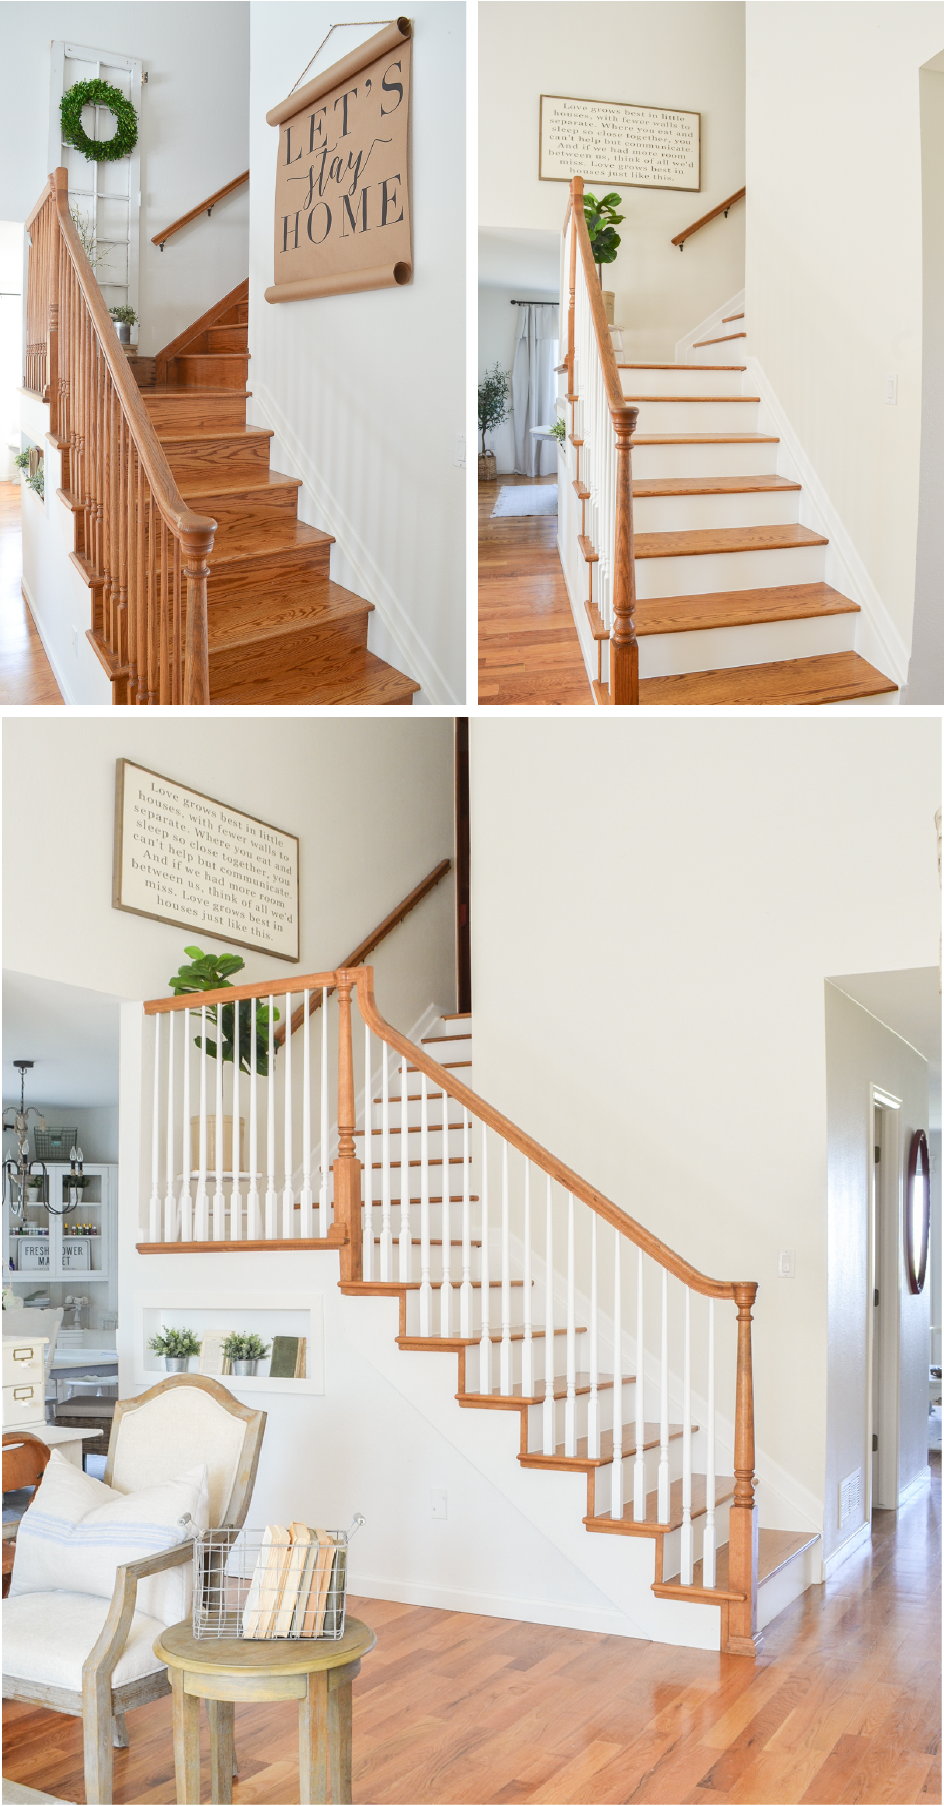 Farmhouse Style Staircase Makeover Staircase Makeover Farmhouse | Style Of Stairs Inside House | Outside India House | Spiral | Design | Mansion | Historic House